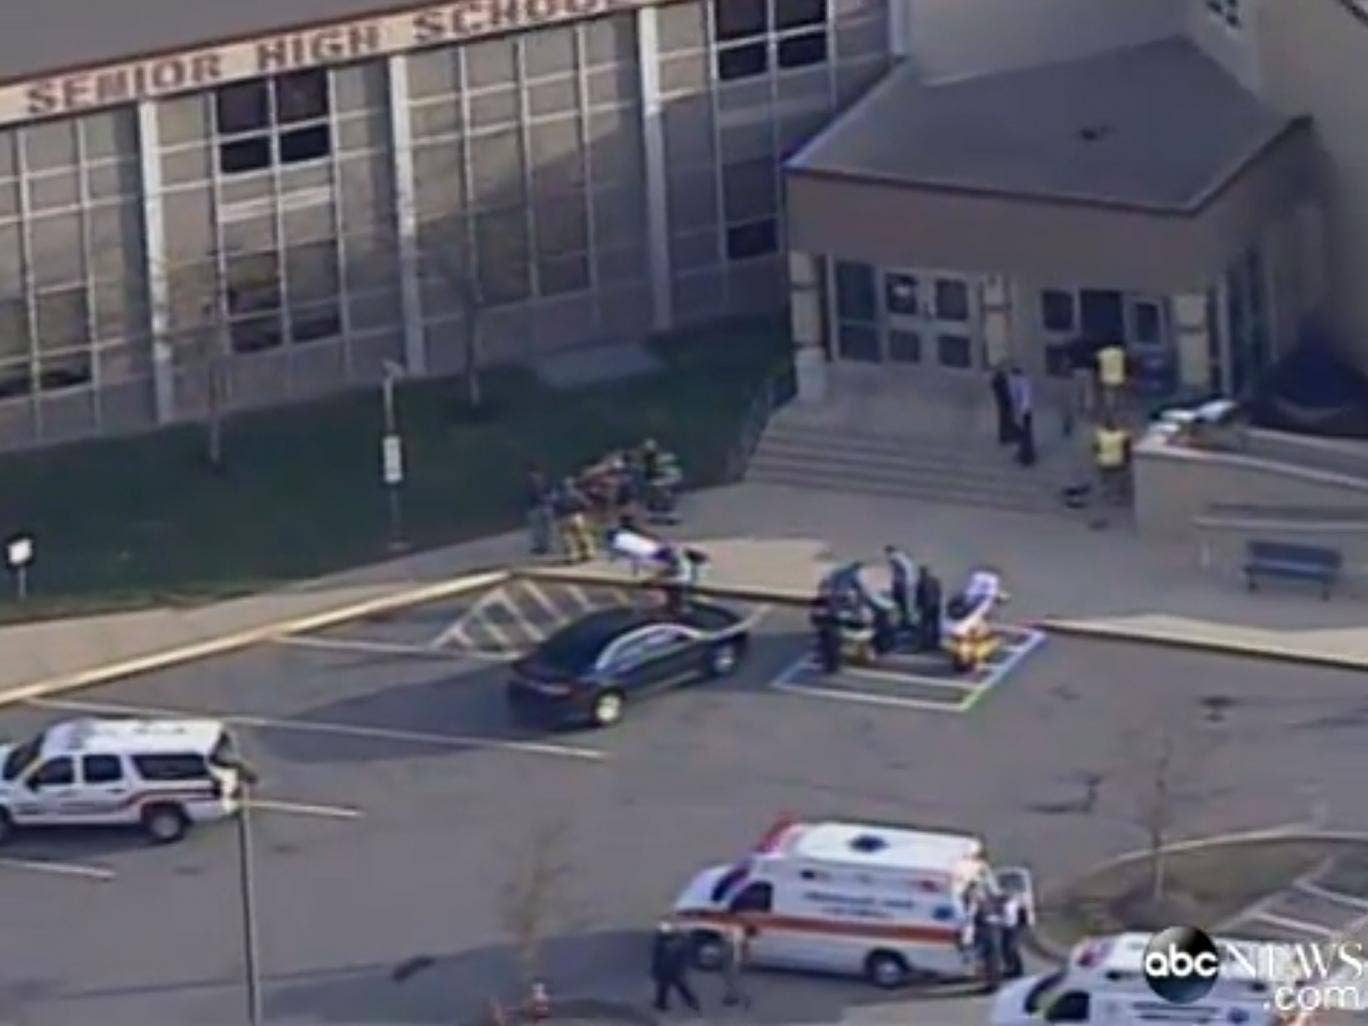 Police said 20 students were injured in the attack outside Franklin Regional High School in Murrysville, near Pittsburgh this morning